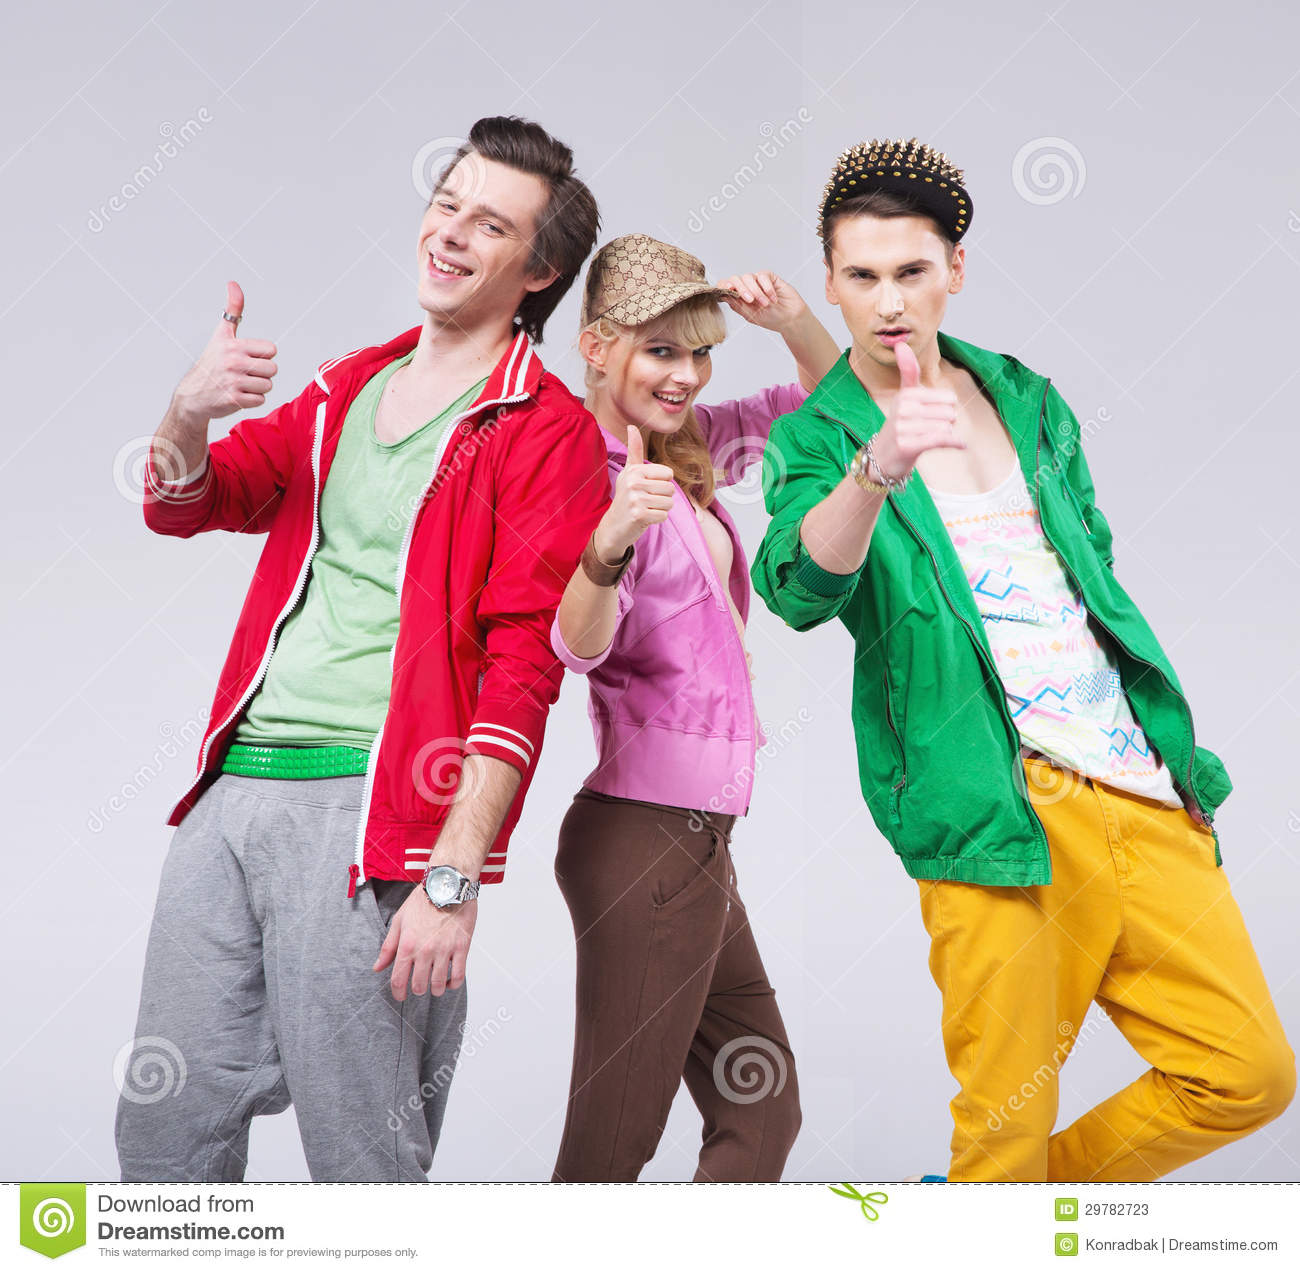 Three Friends In Optimistic Pose Stock Photos - Image: 29782723